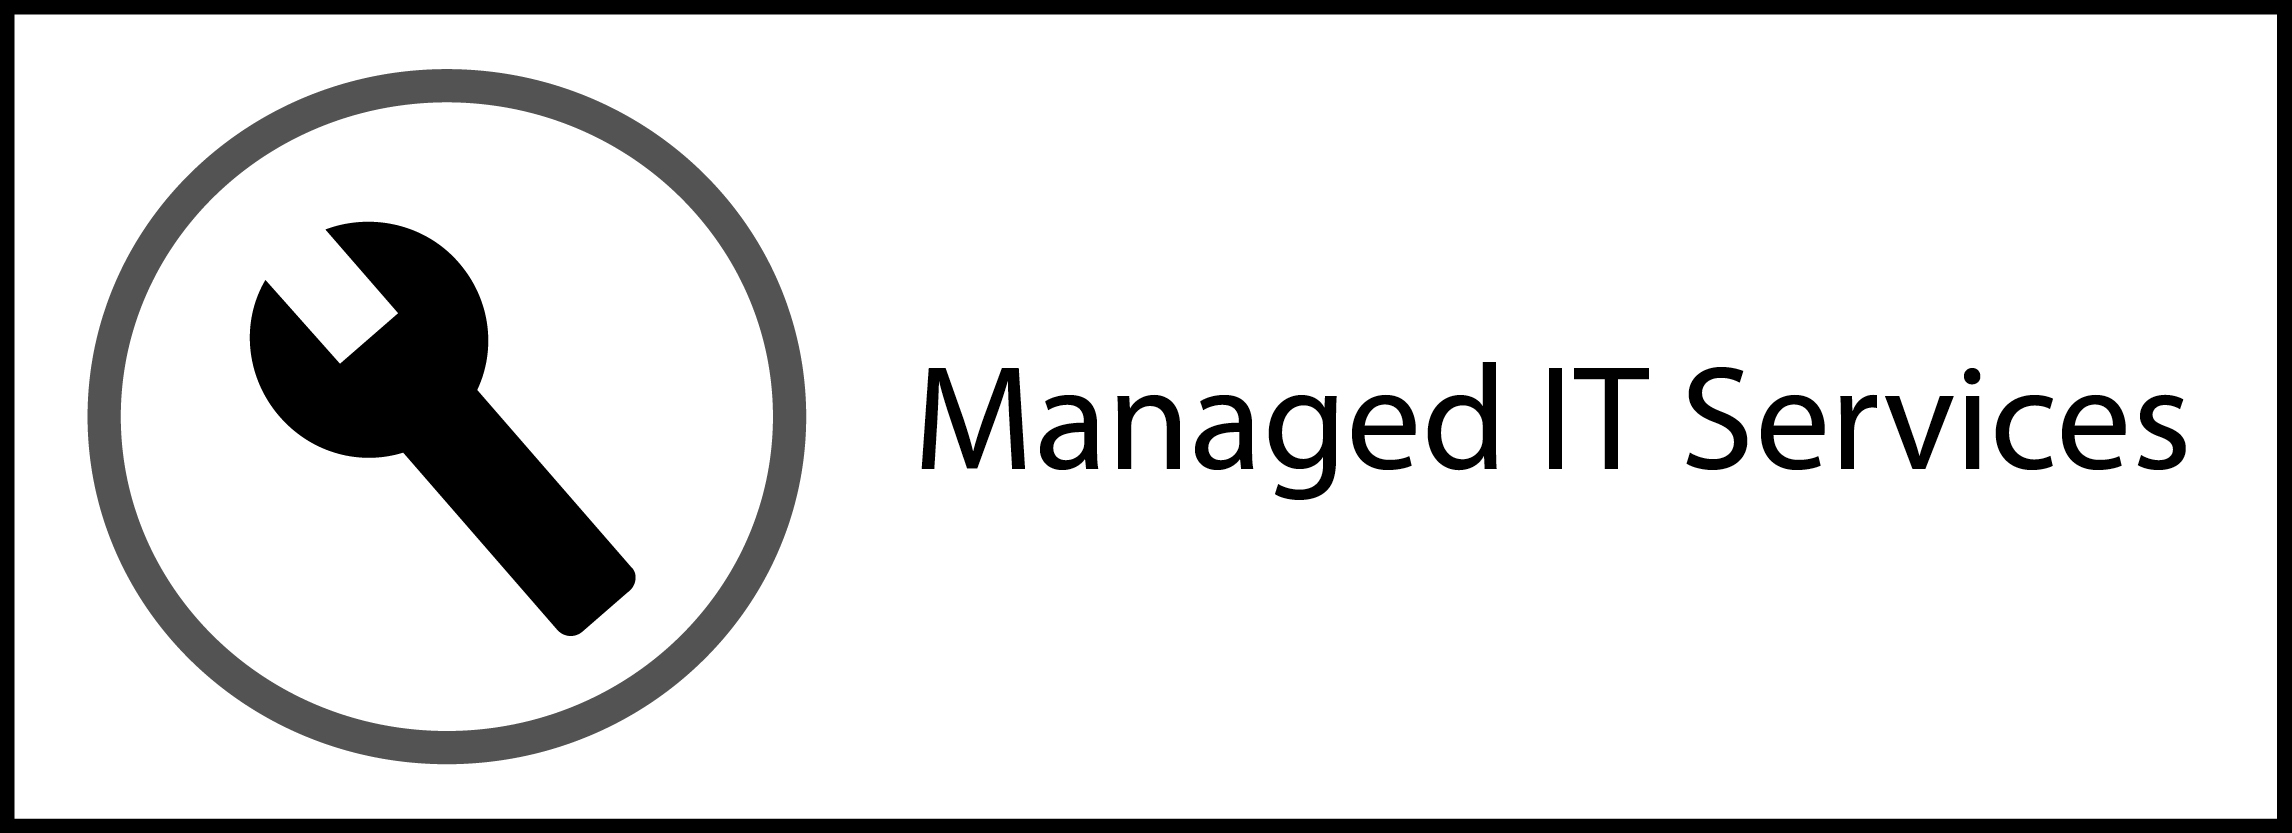 managed IT services, IT systems, expertise, technology services, IT department, network resources, web applications, private cloud services, cyber security, data backups, help desk support, computer maintenance, infrastructure, scalability, private servers, application delivery, unified communications, data management